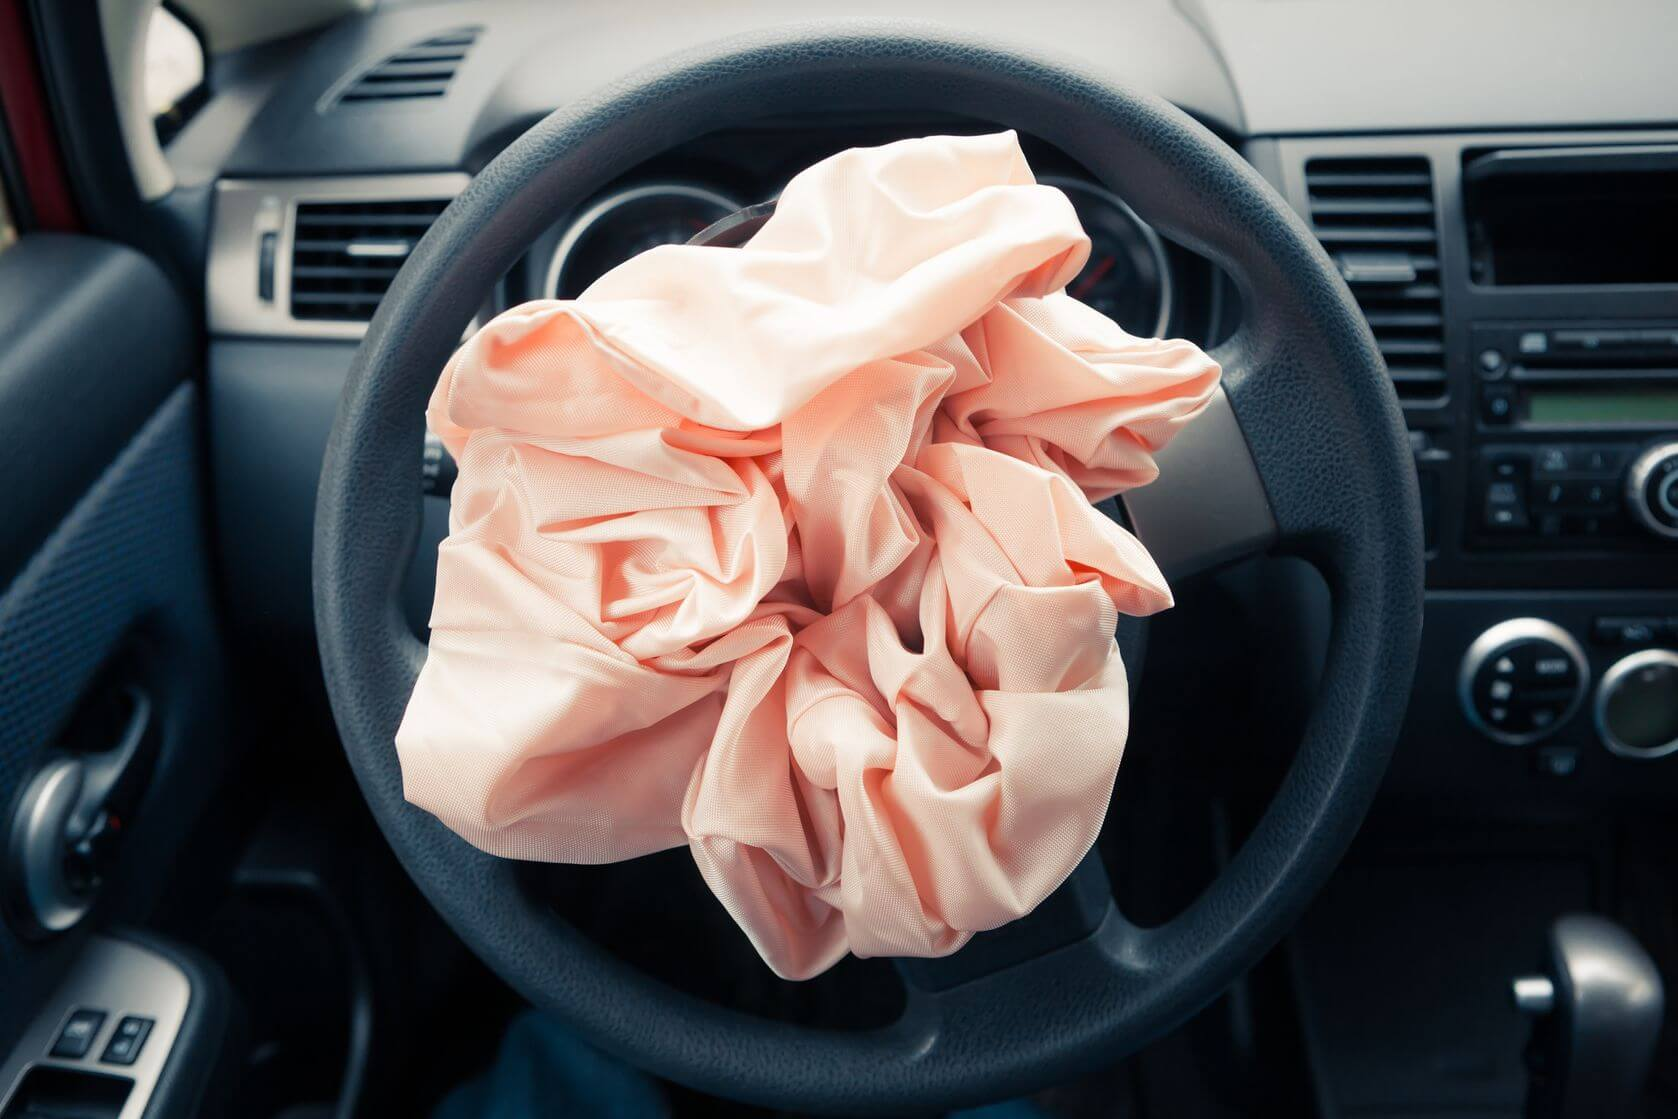 4 steps to follow after an airbag deploys